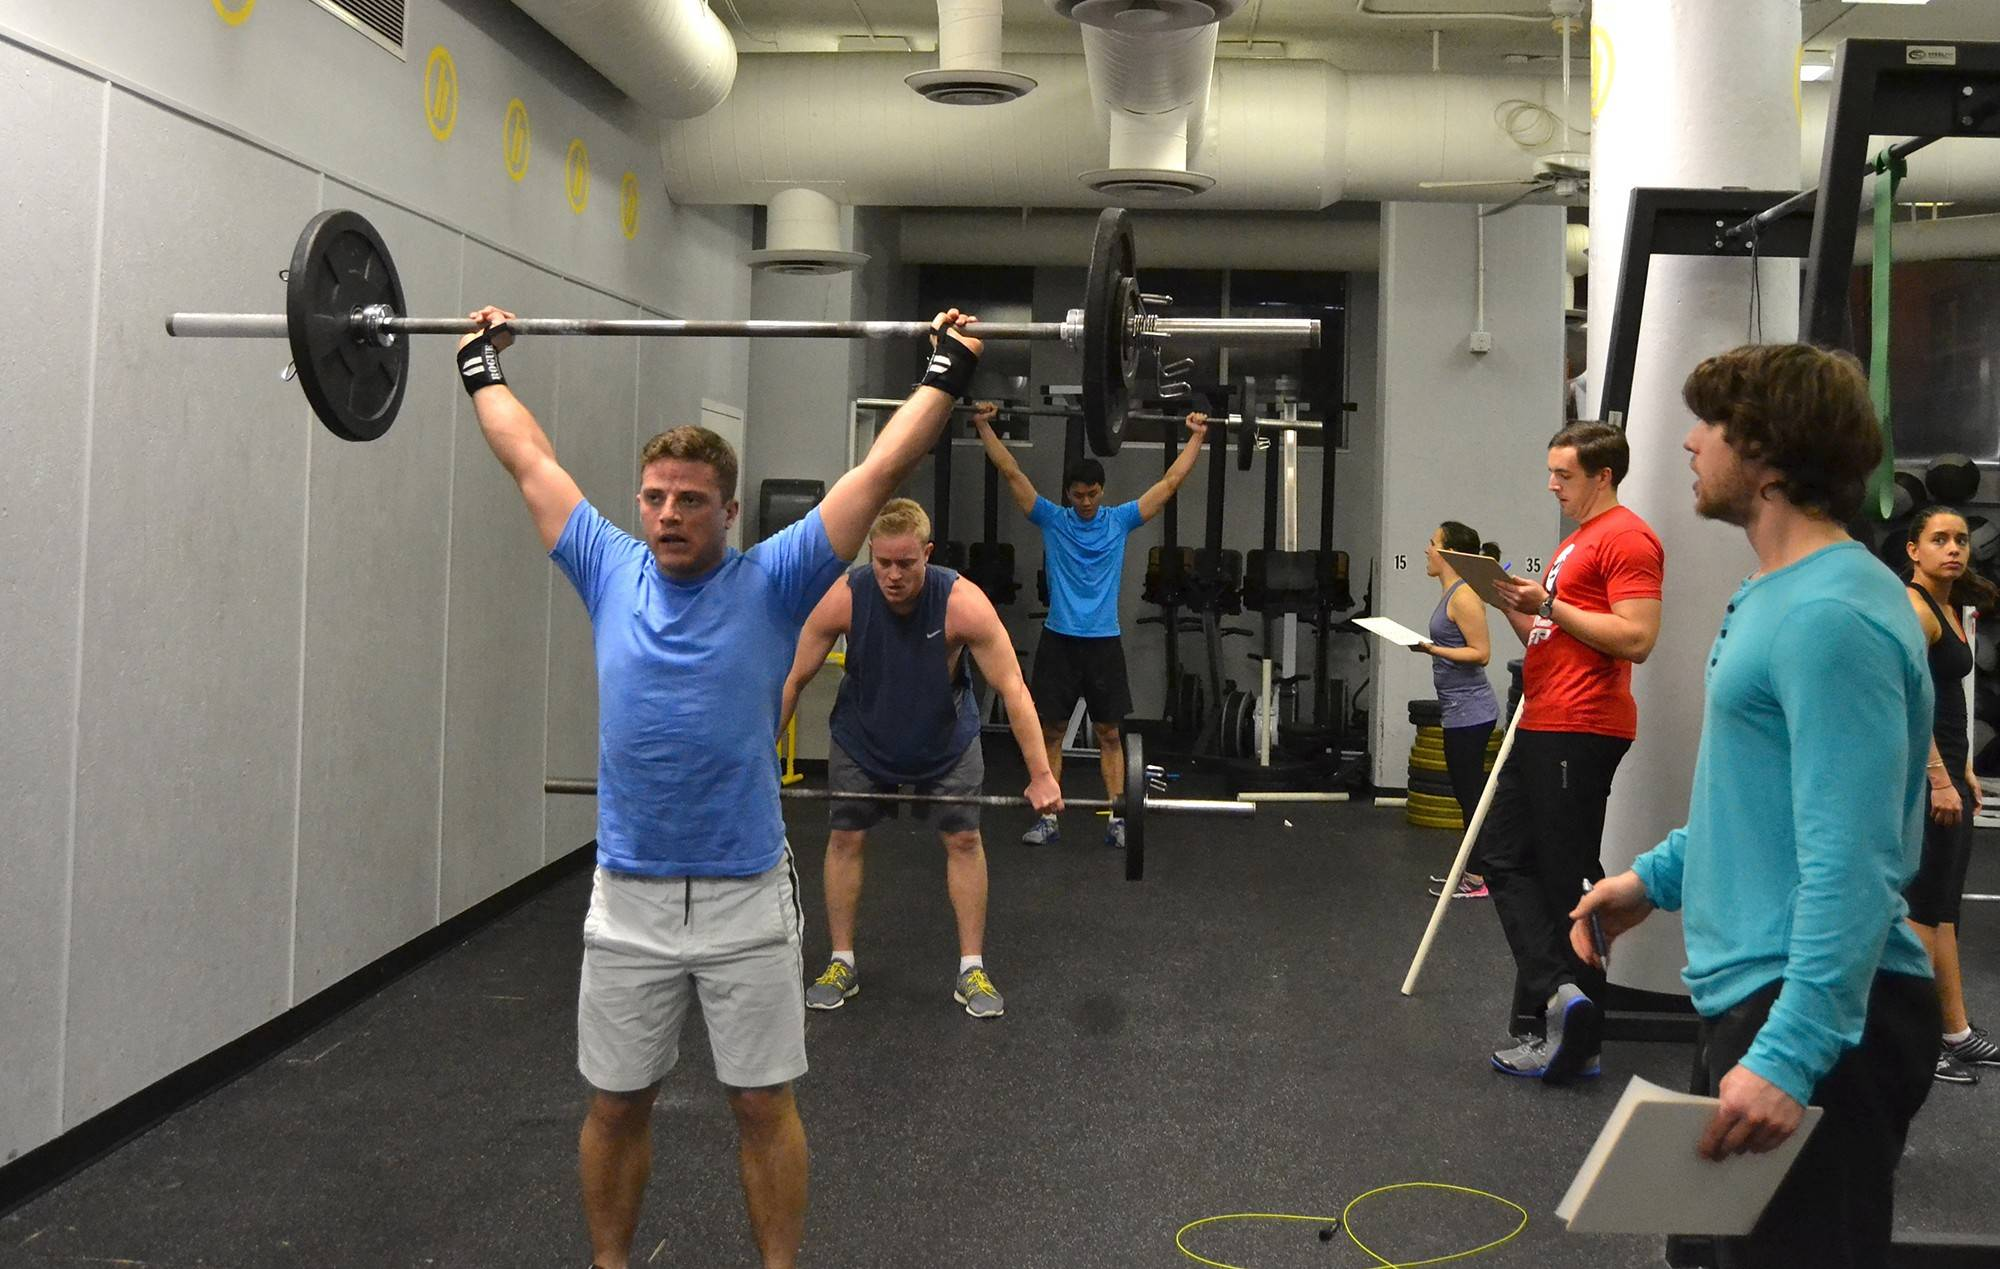 Joseph Cofrancesco, front, and others lift under the supervision of judges at CrossFit Balance in Washington.